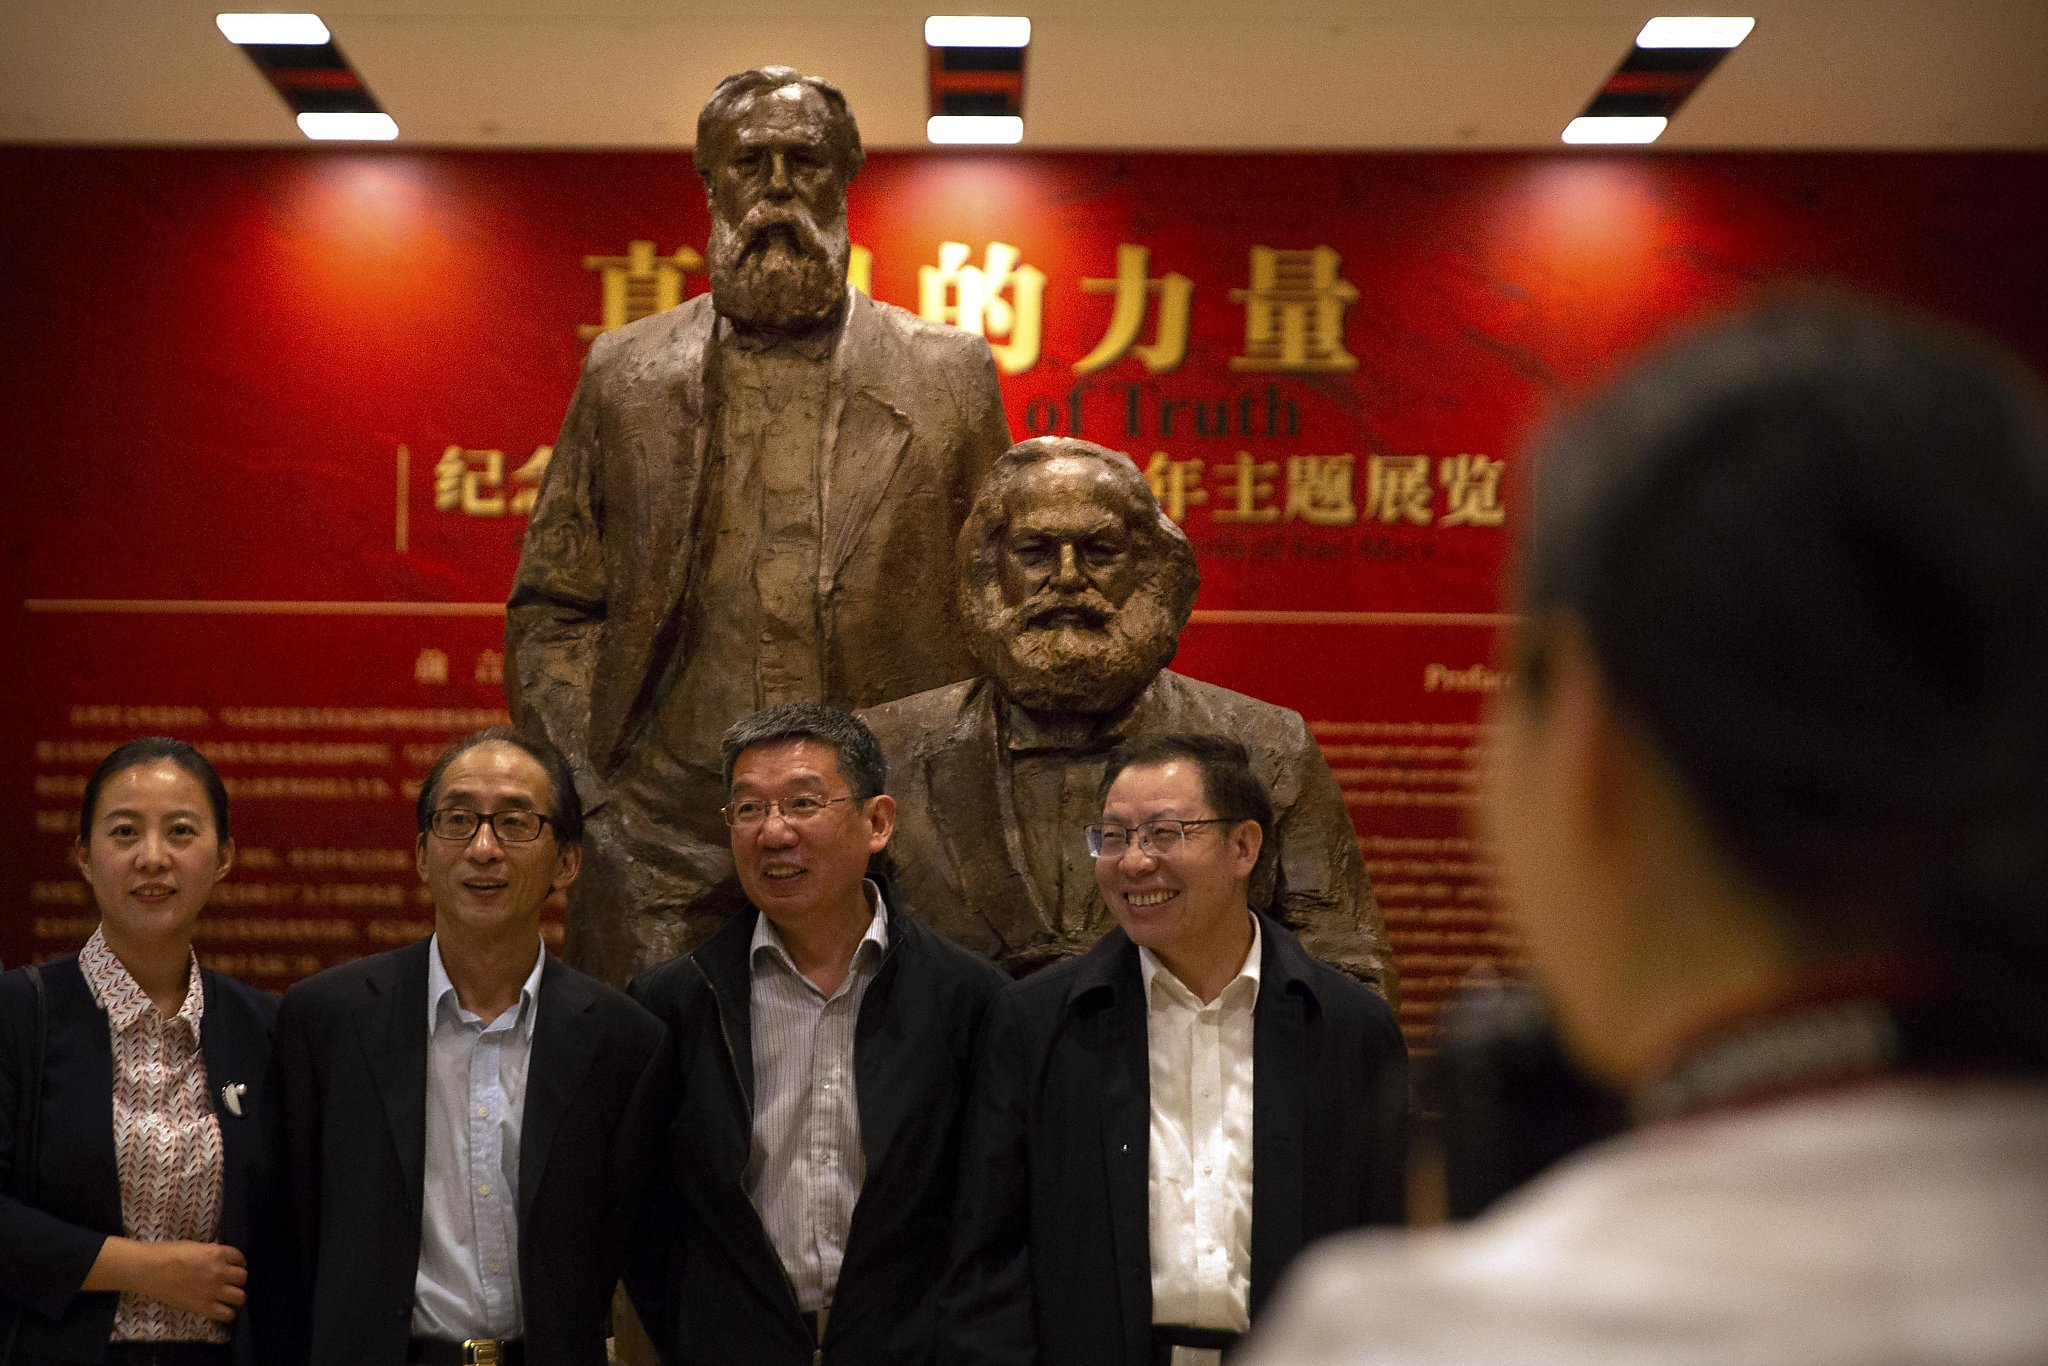 Chinese leader promotes Marx at home, free trade abroad - SFGate